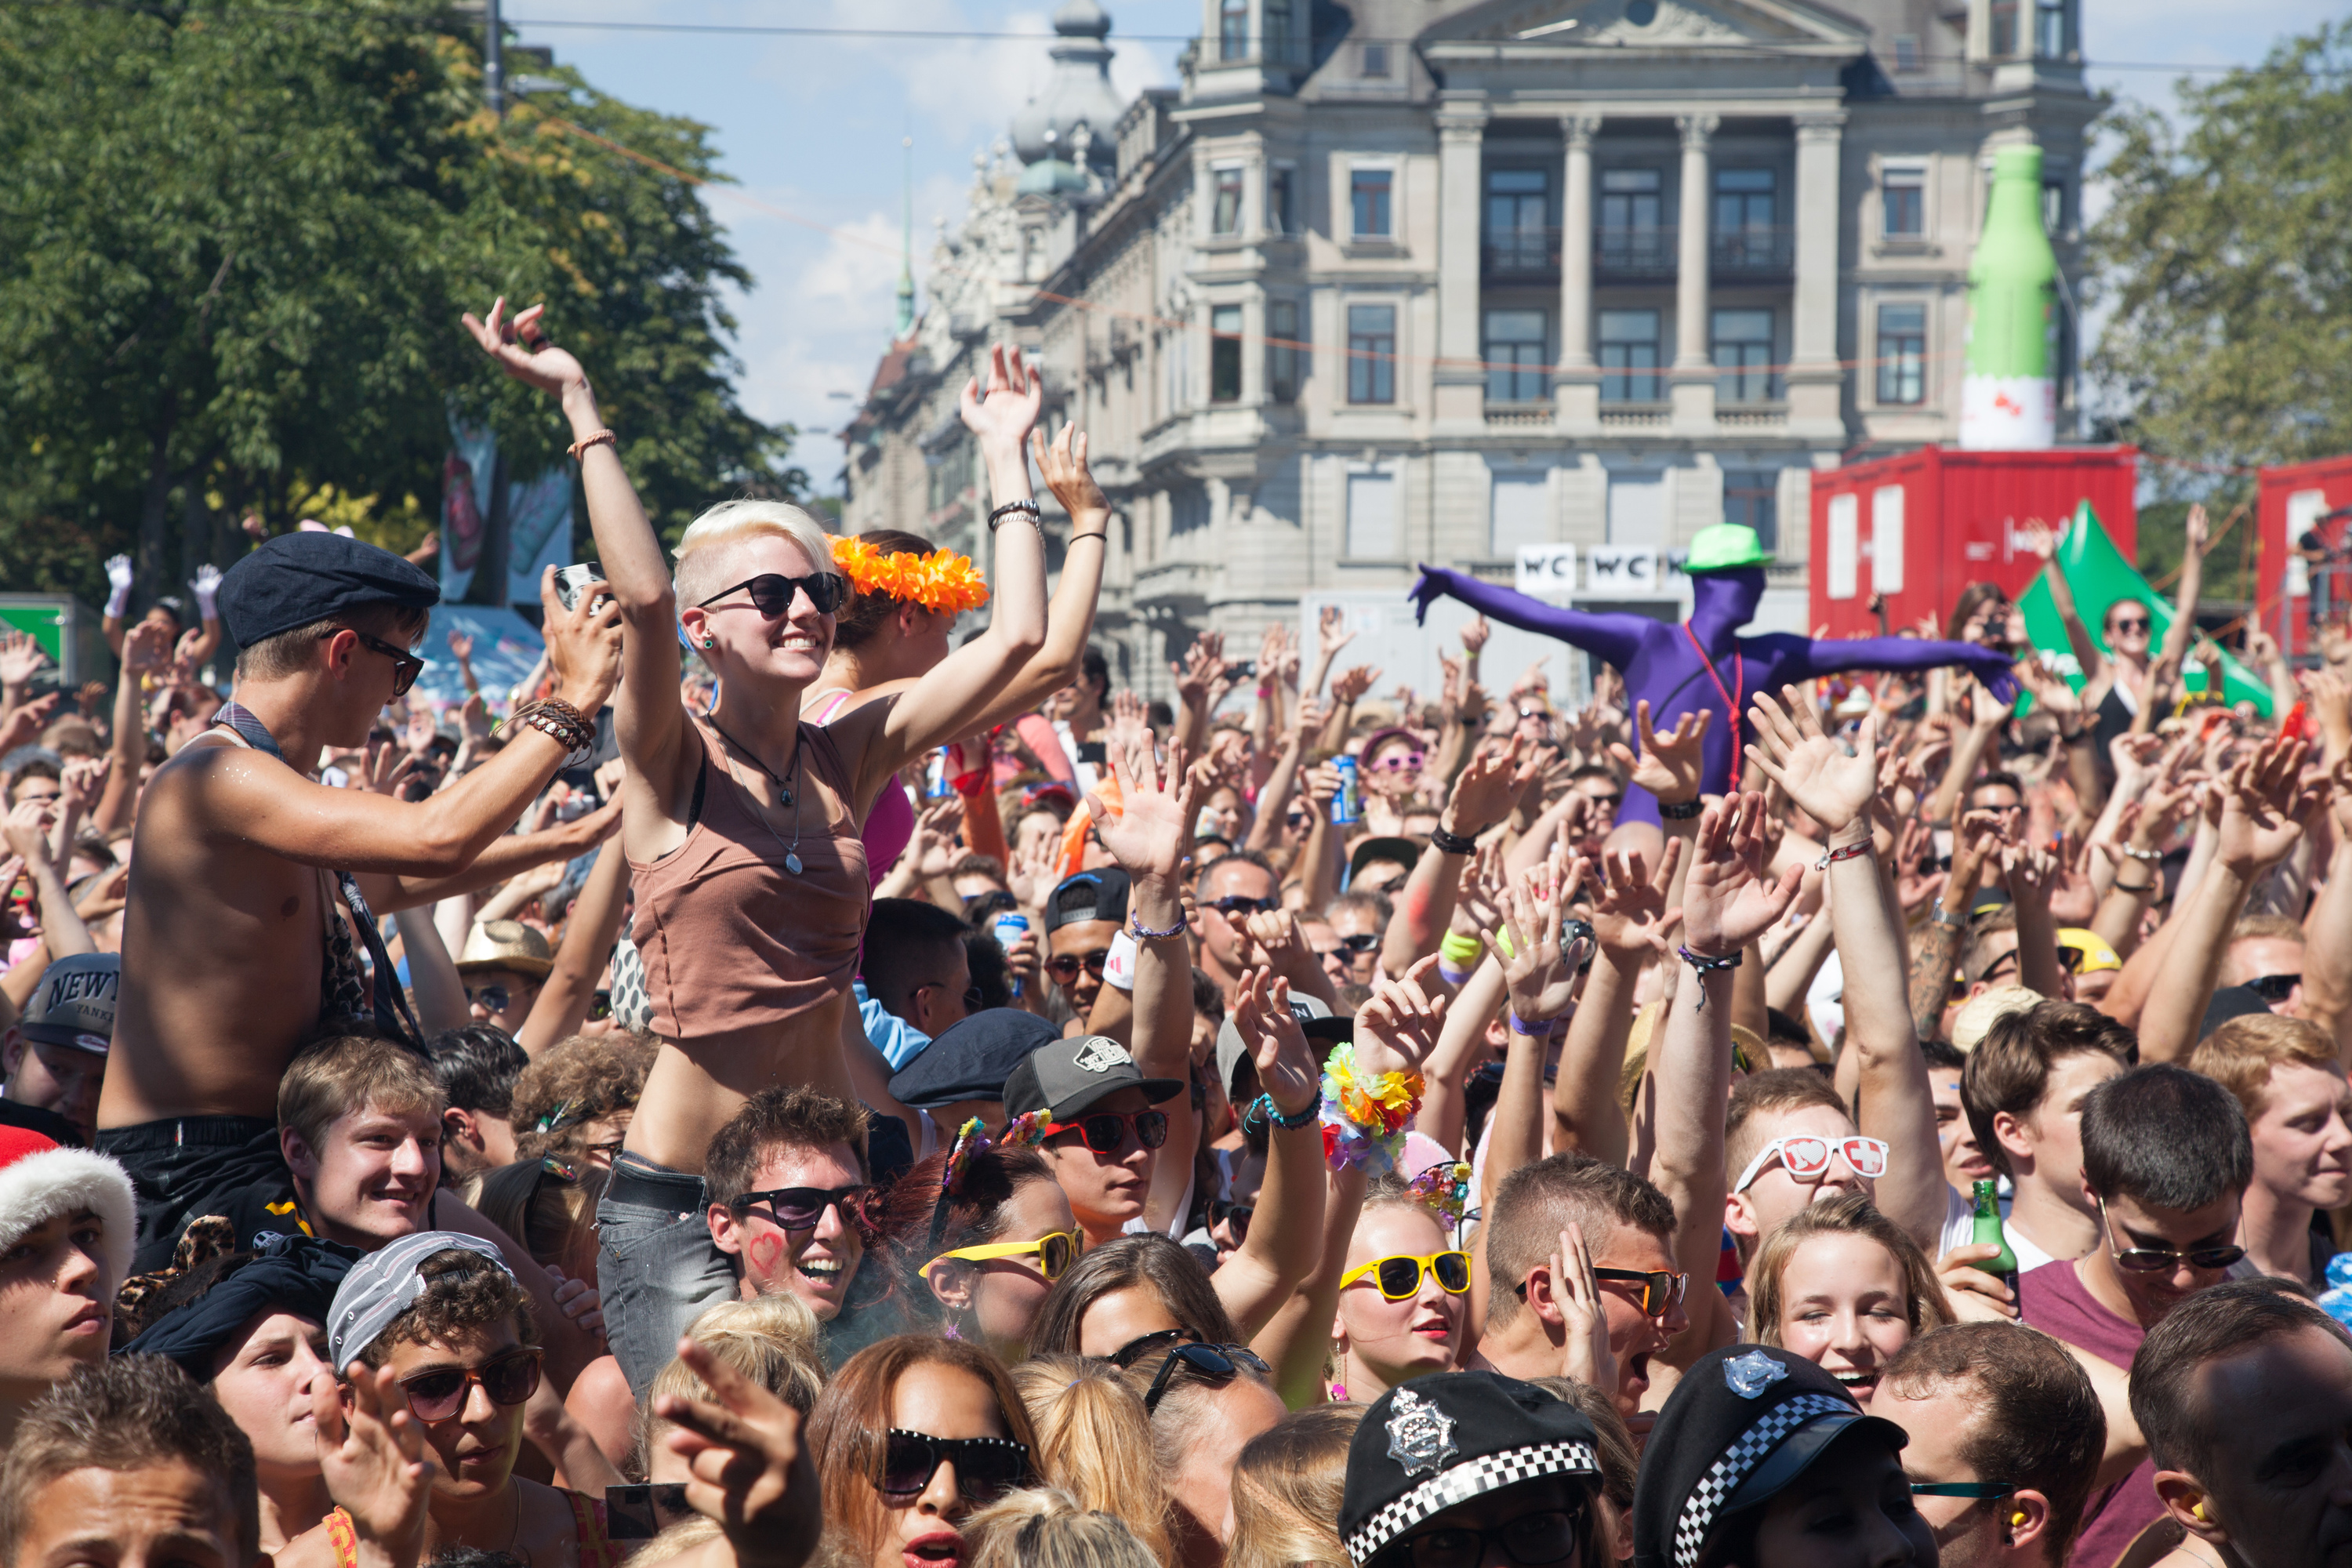 Viral 'coronavirus protest photo' is actually Zurich's biggest street party